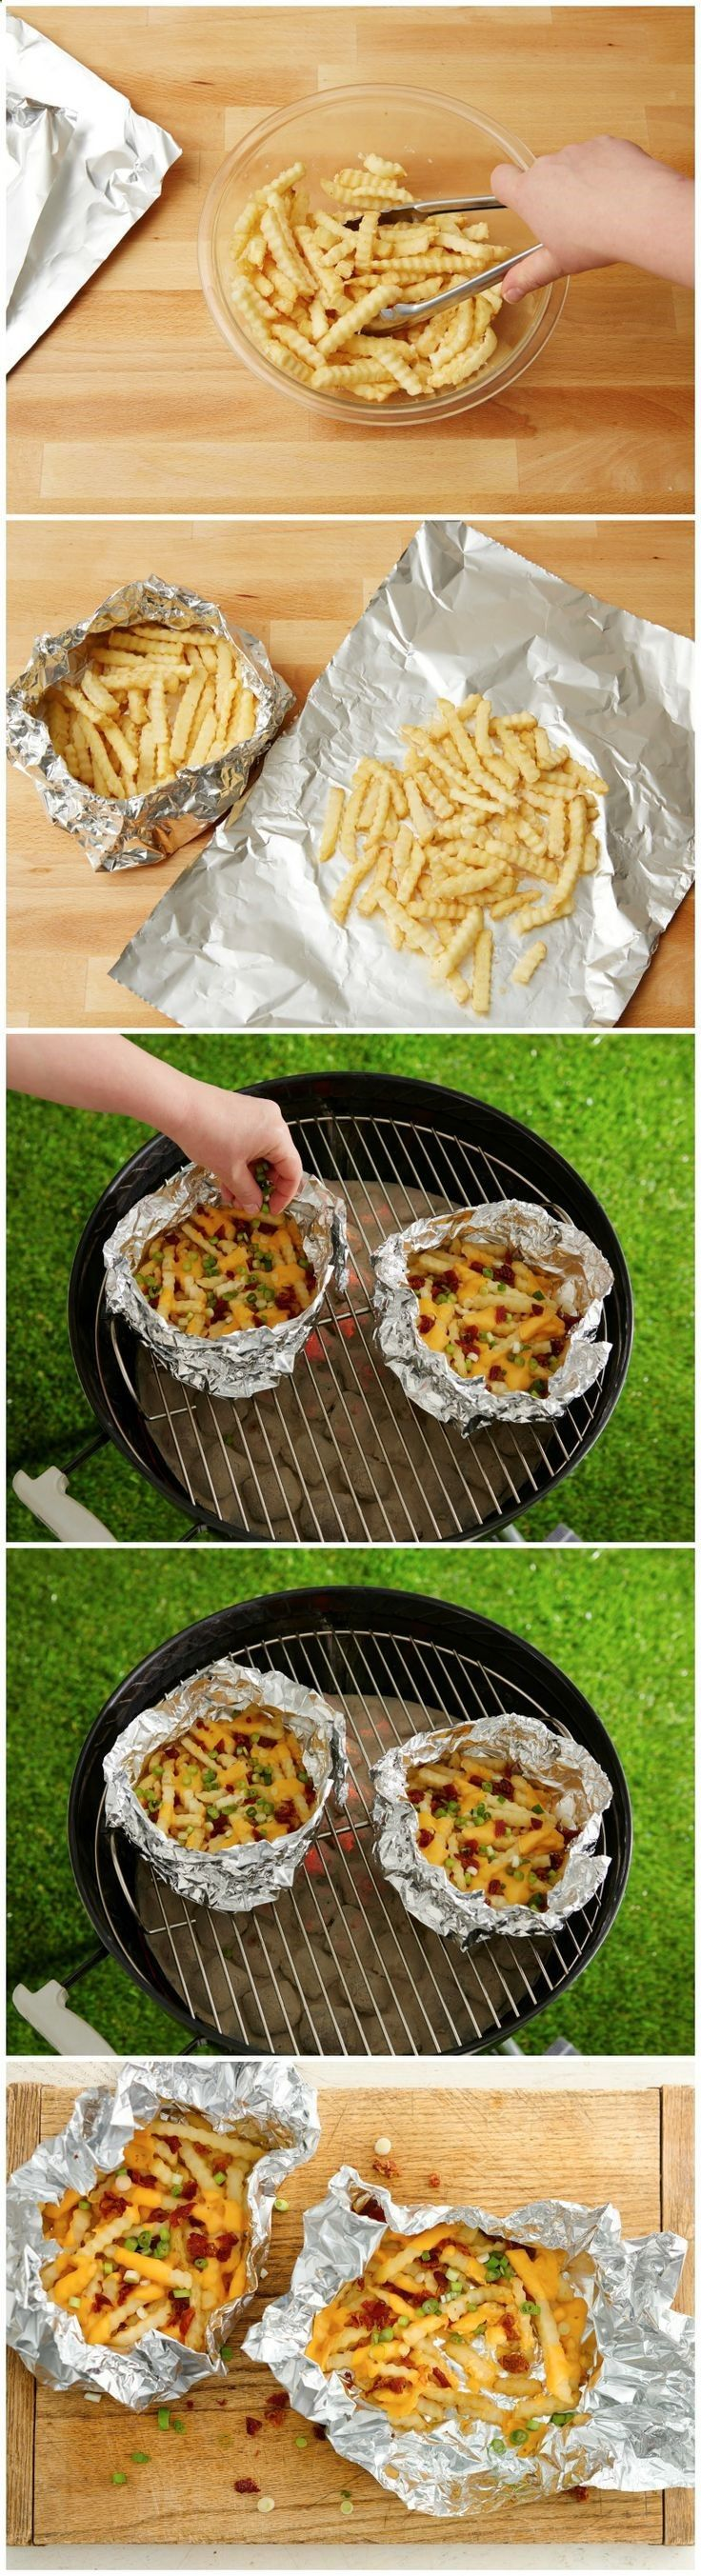 Grilled Foil-Pack Cheesy Fries.